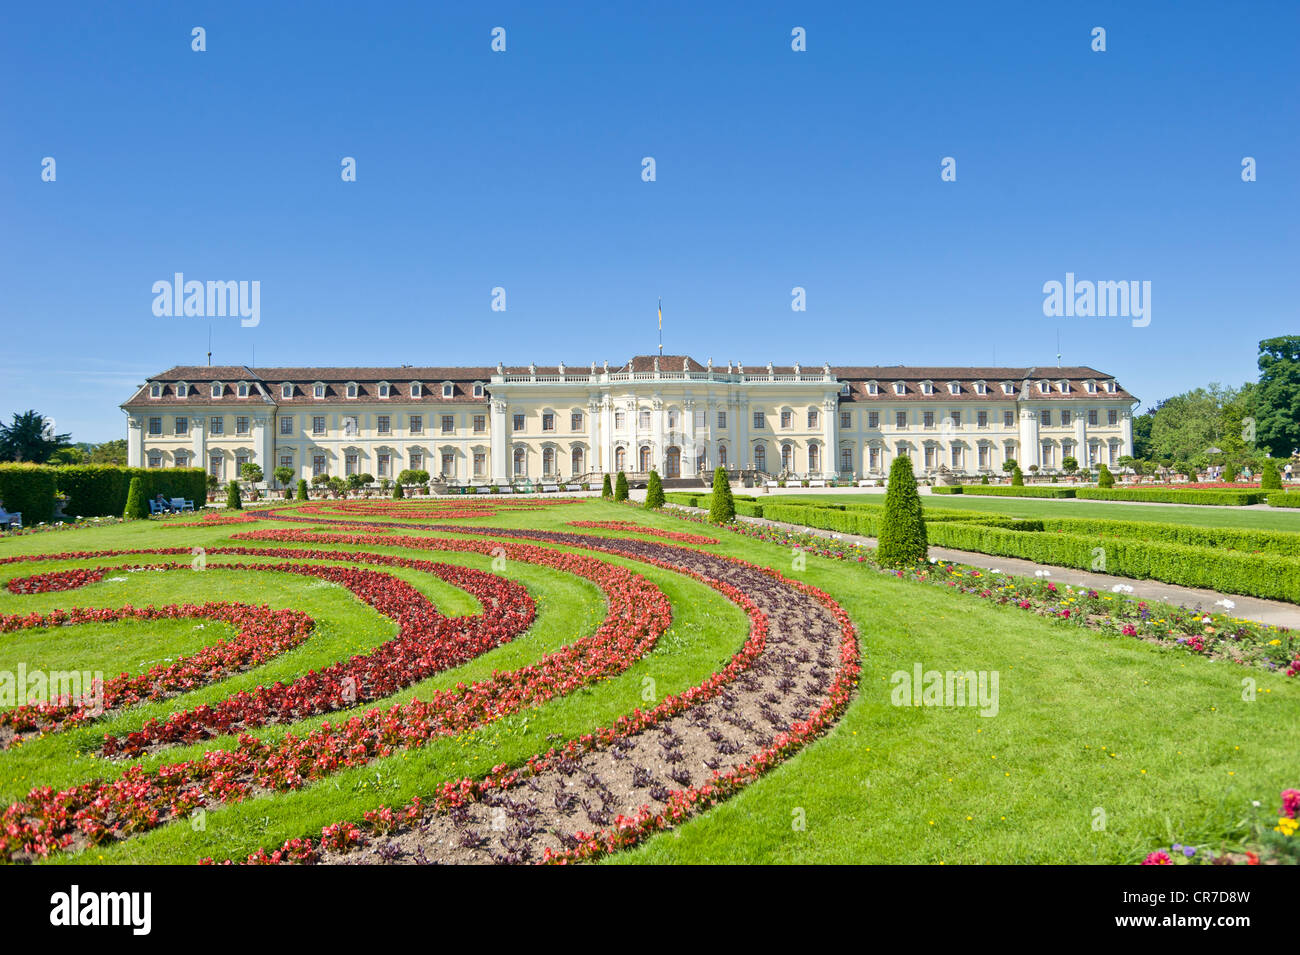 Schloss Ludwigsburg Palace, Blossoming Baroque gardens, Neckar, Baden-Wuerttemberg, Germany, Europe - Stock Image